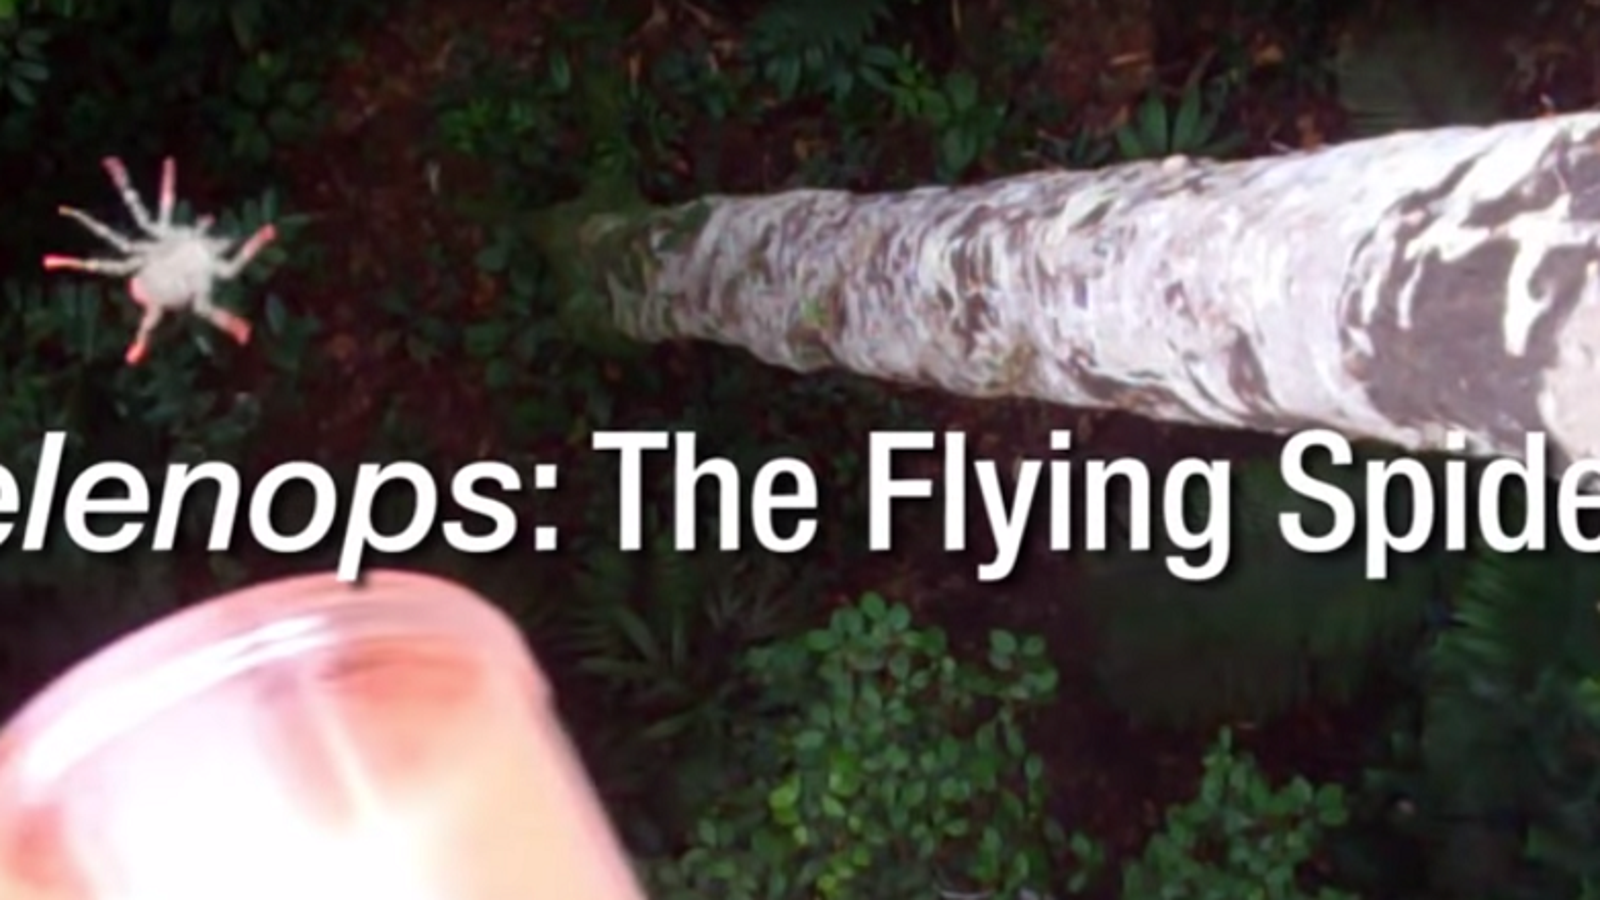 Watch Biologists Drop Flying Spiders Out of Trees for Science